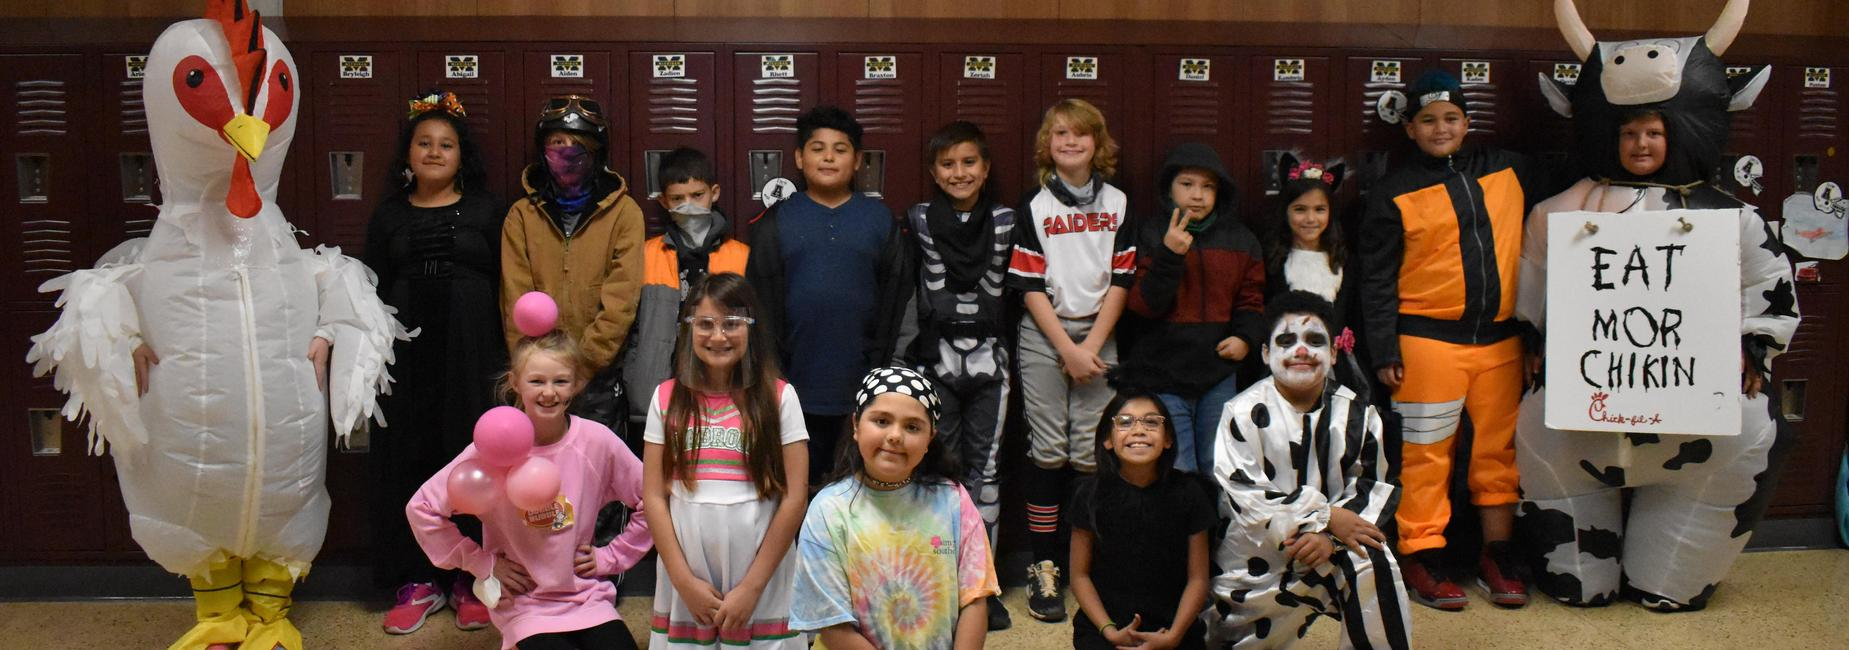 Elementary students pose with Halloween costumes